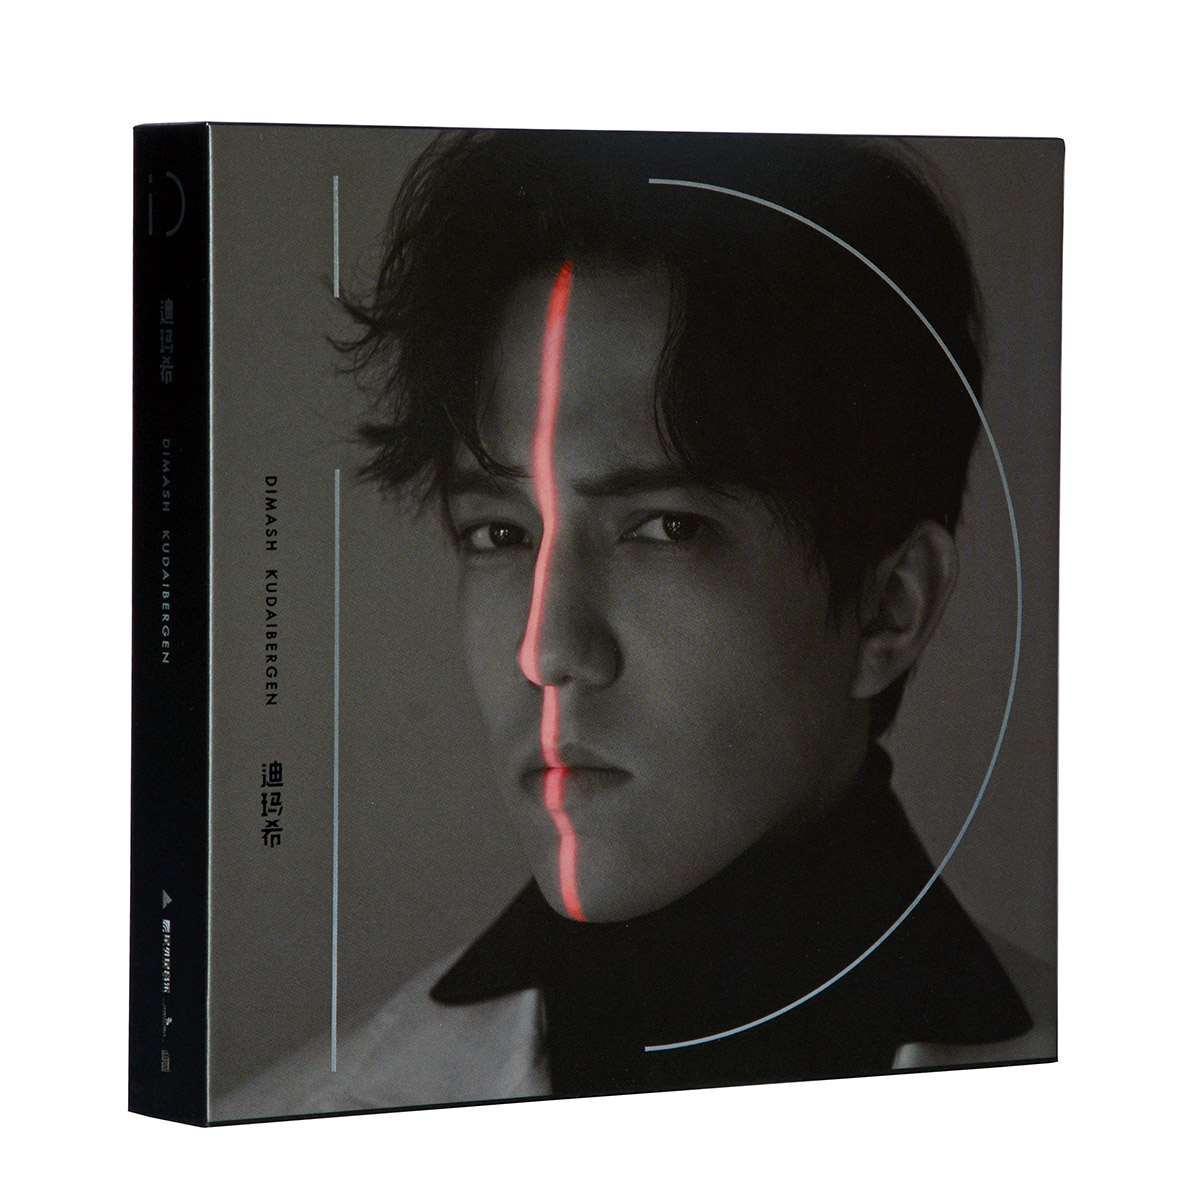 NEW 2019 Genuine Dimash Kudaibergen《iD》2CD + Album + Official Poster Music CD  Crown Of Thorns Car Music